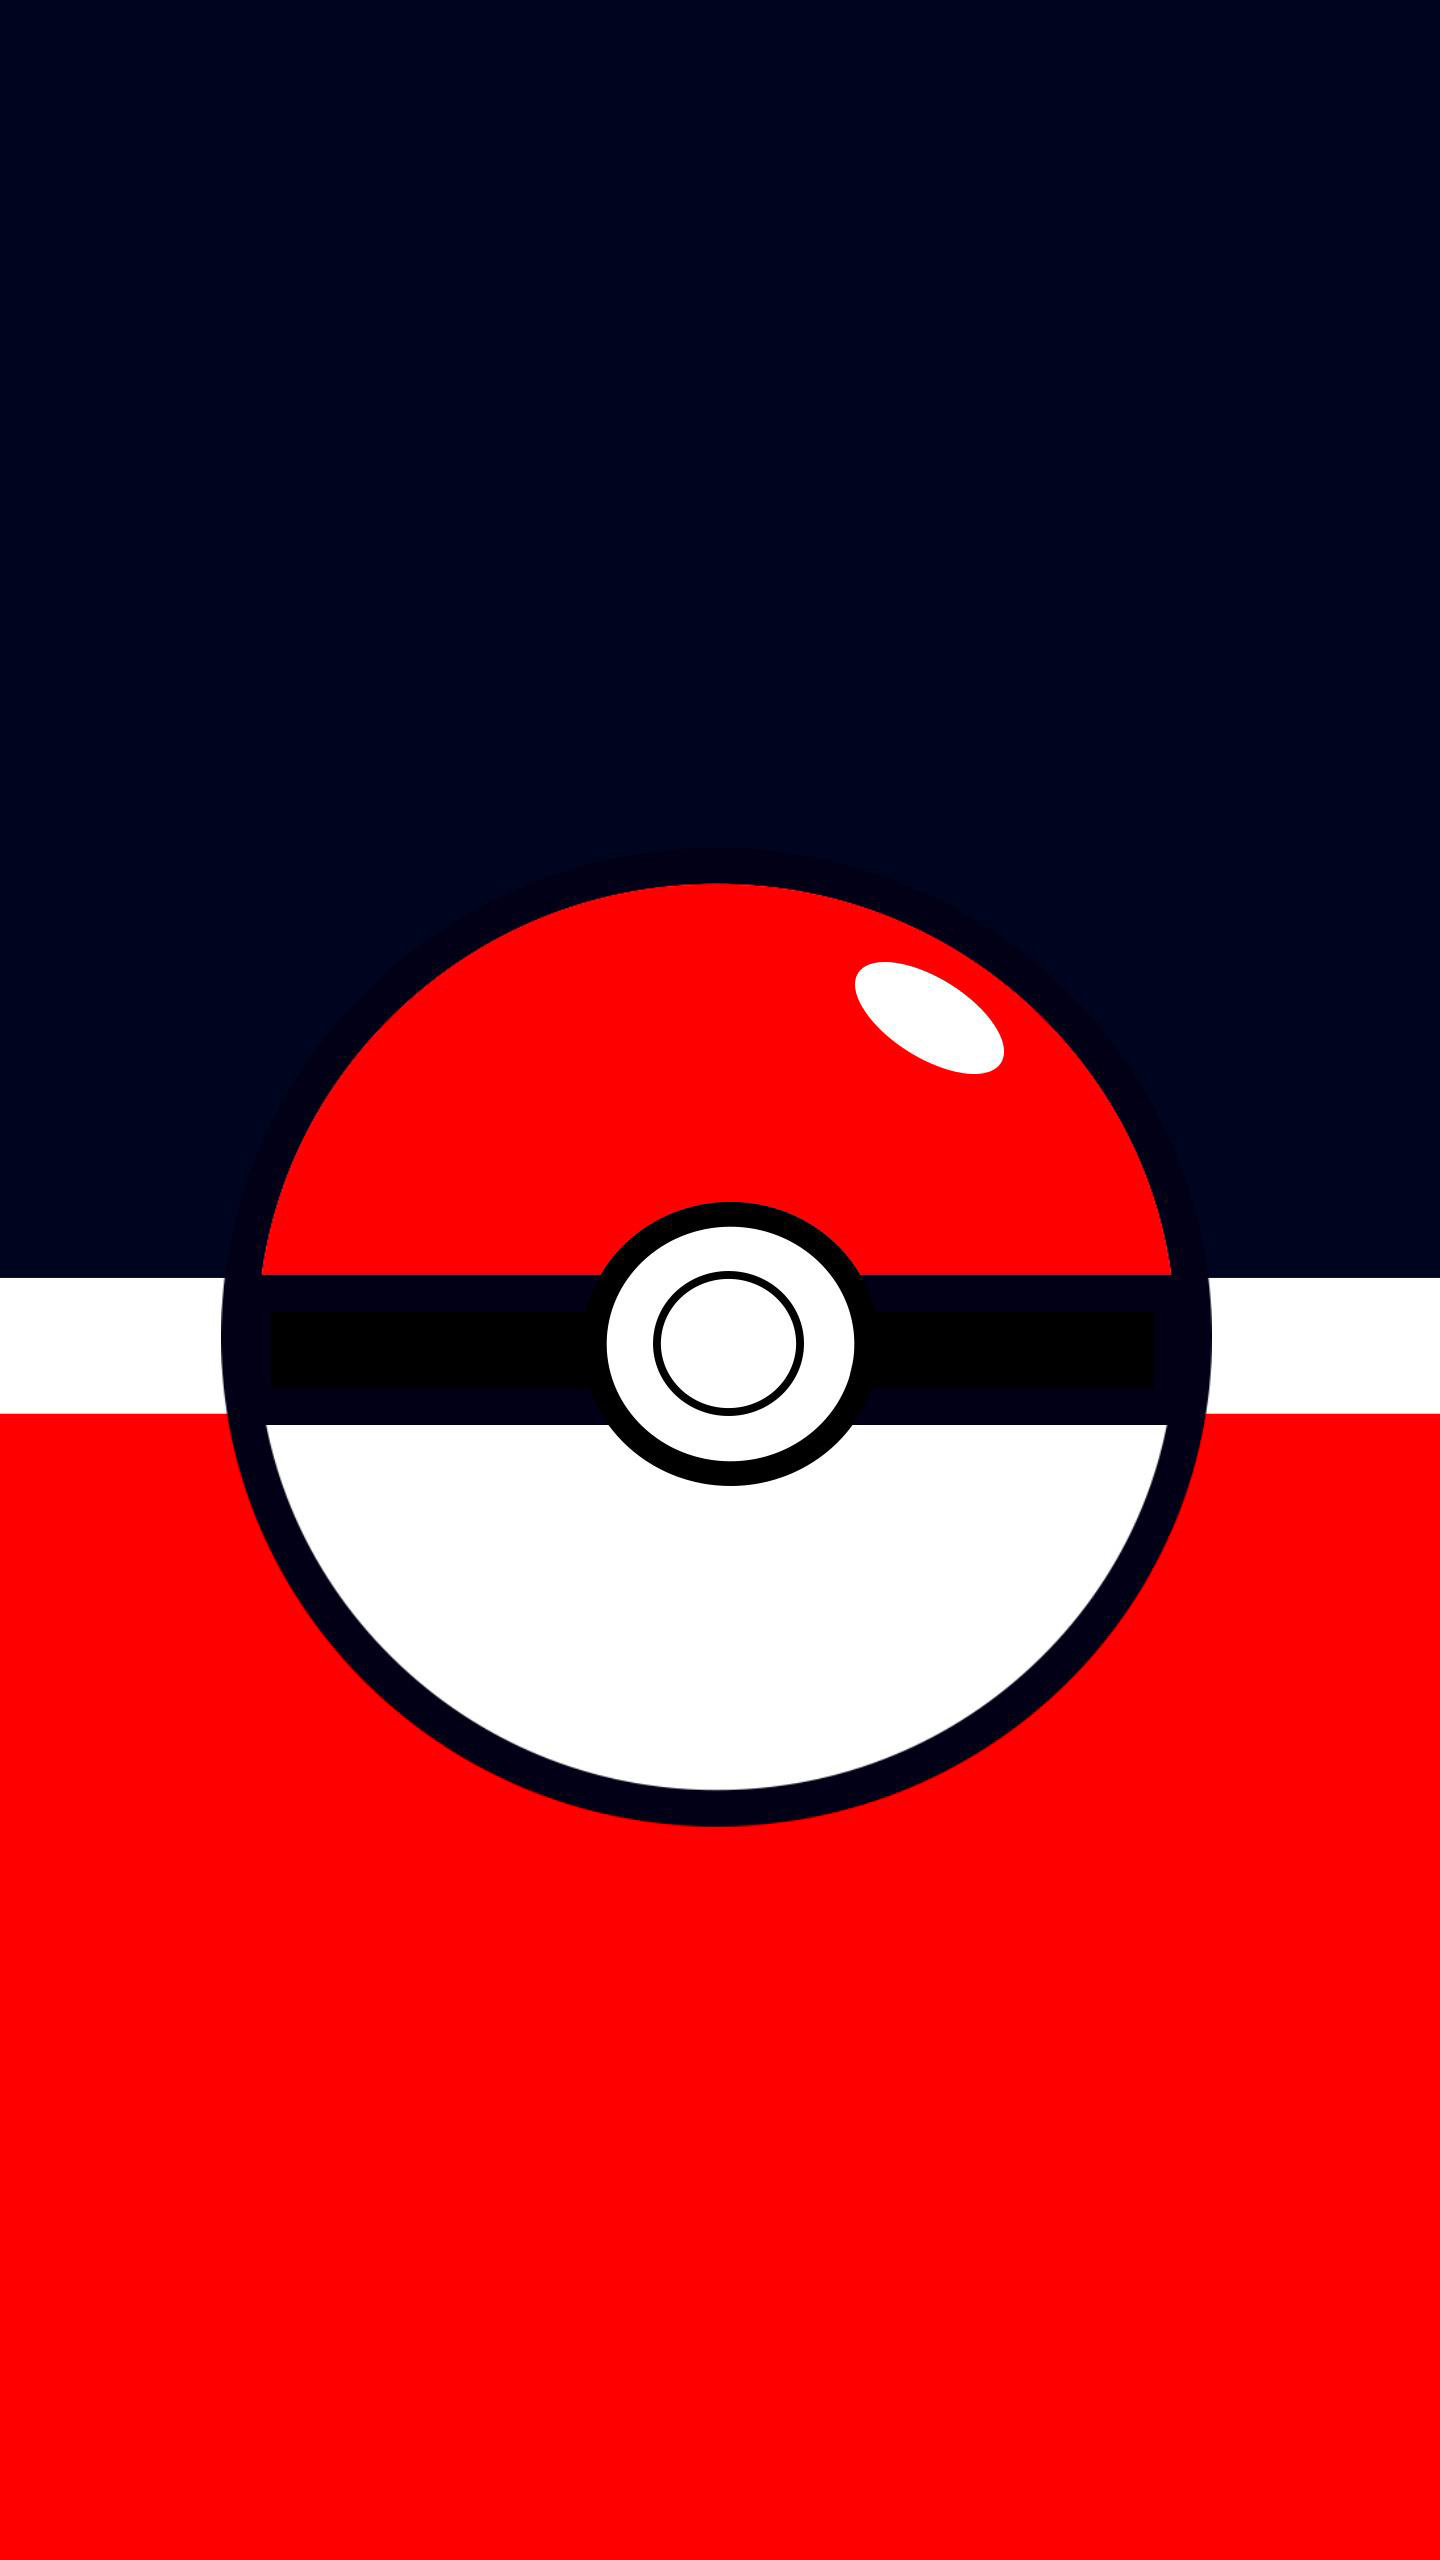 Pokemon Minimal Background Hd Wallpaper